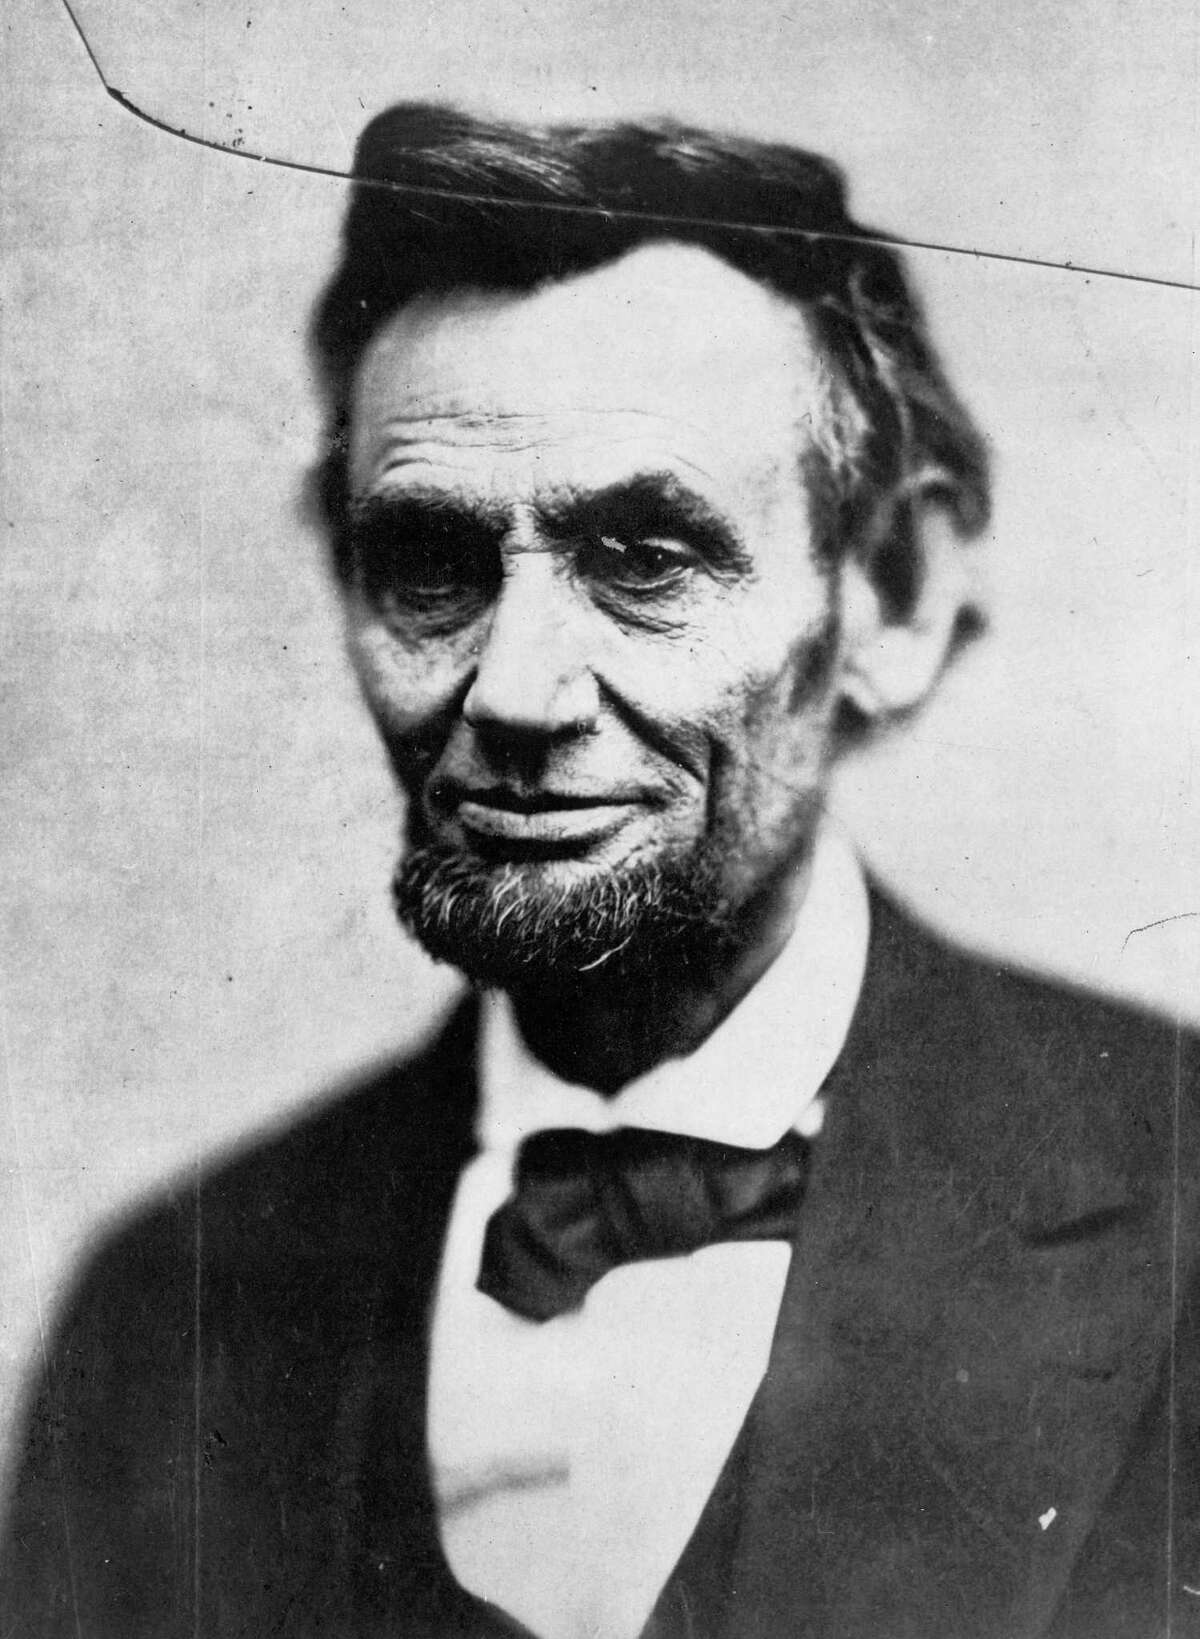 Rubber-band man Abraham Lincoln was, as a young man, an ace wrestler. He is in the Wrestling Hall of Fame.